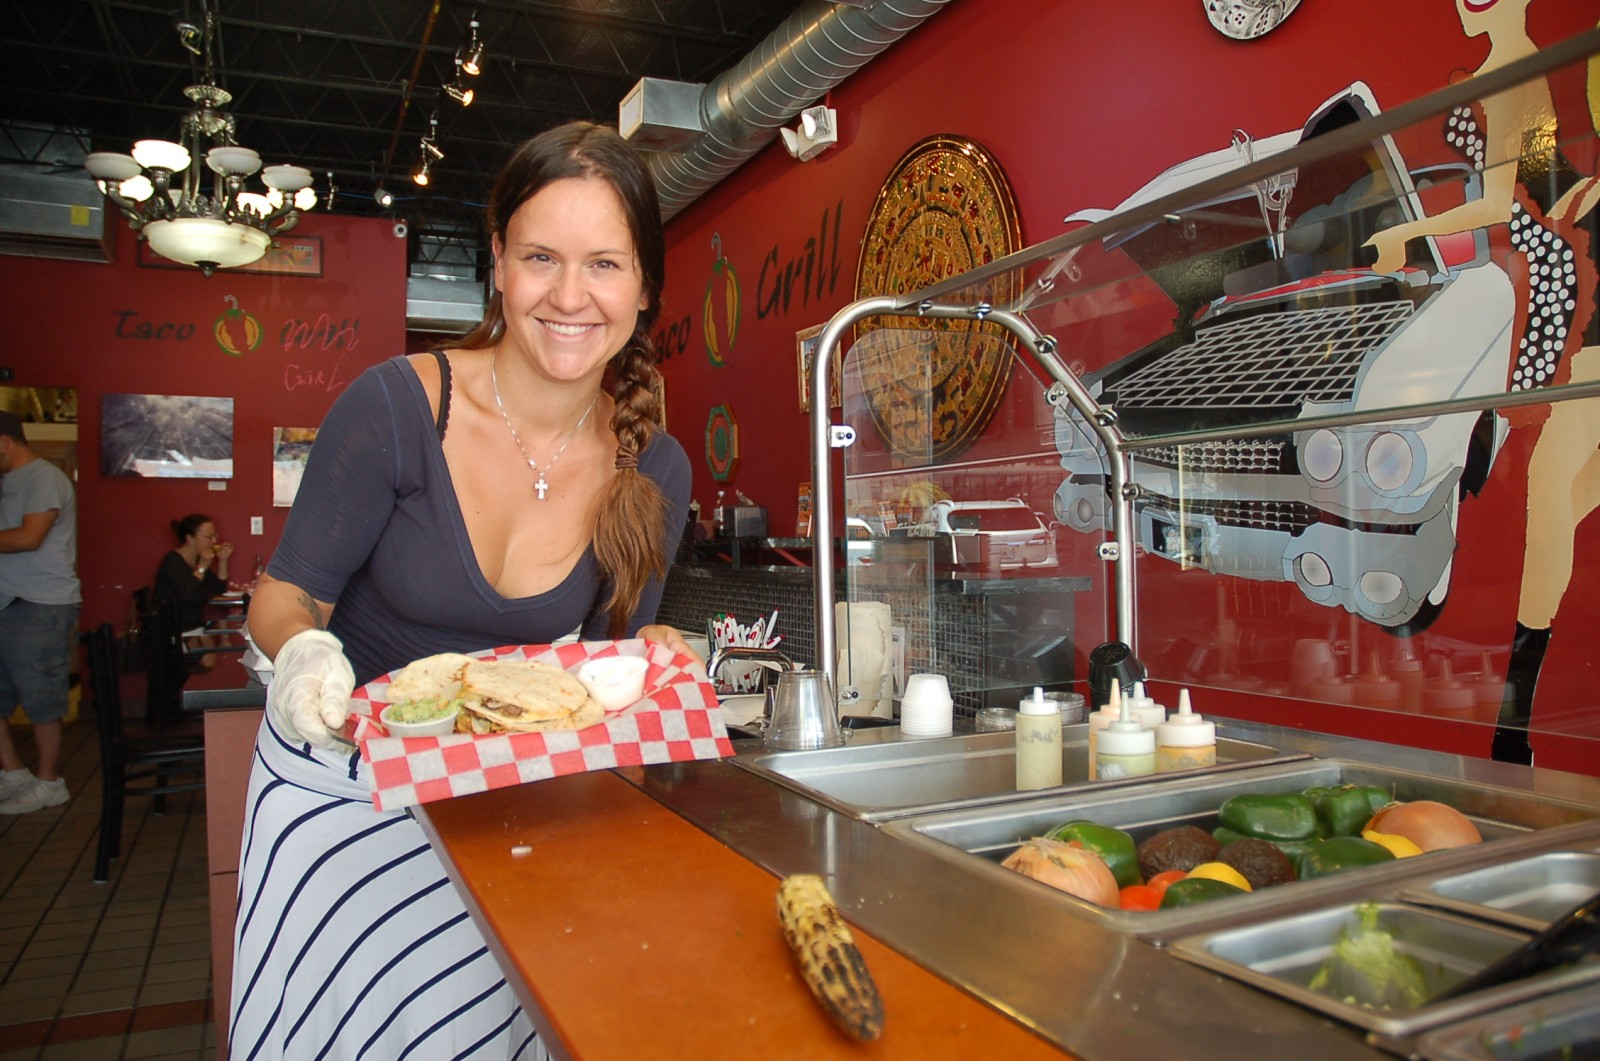 Chef Adora Wisdom continues to work on yachts while owning and running her Ft. Lauderdale restaurant, Taco Grill. PHOTO BY DORIE COX